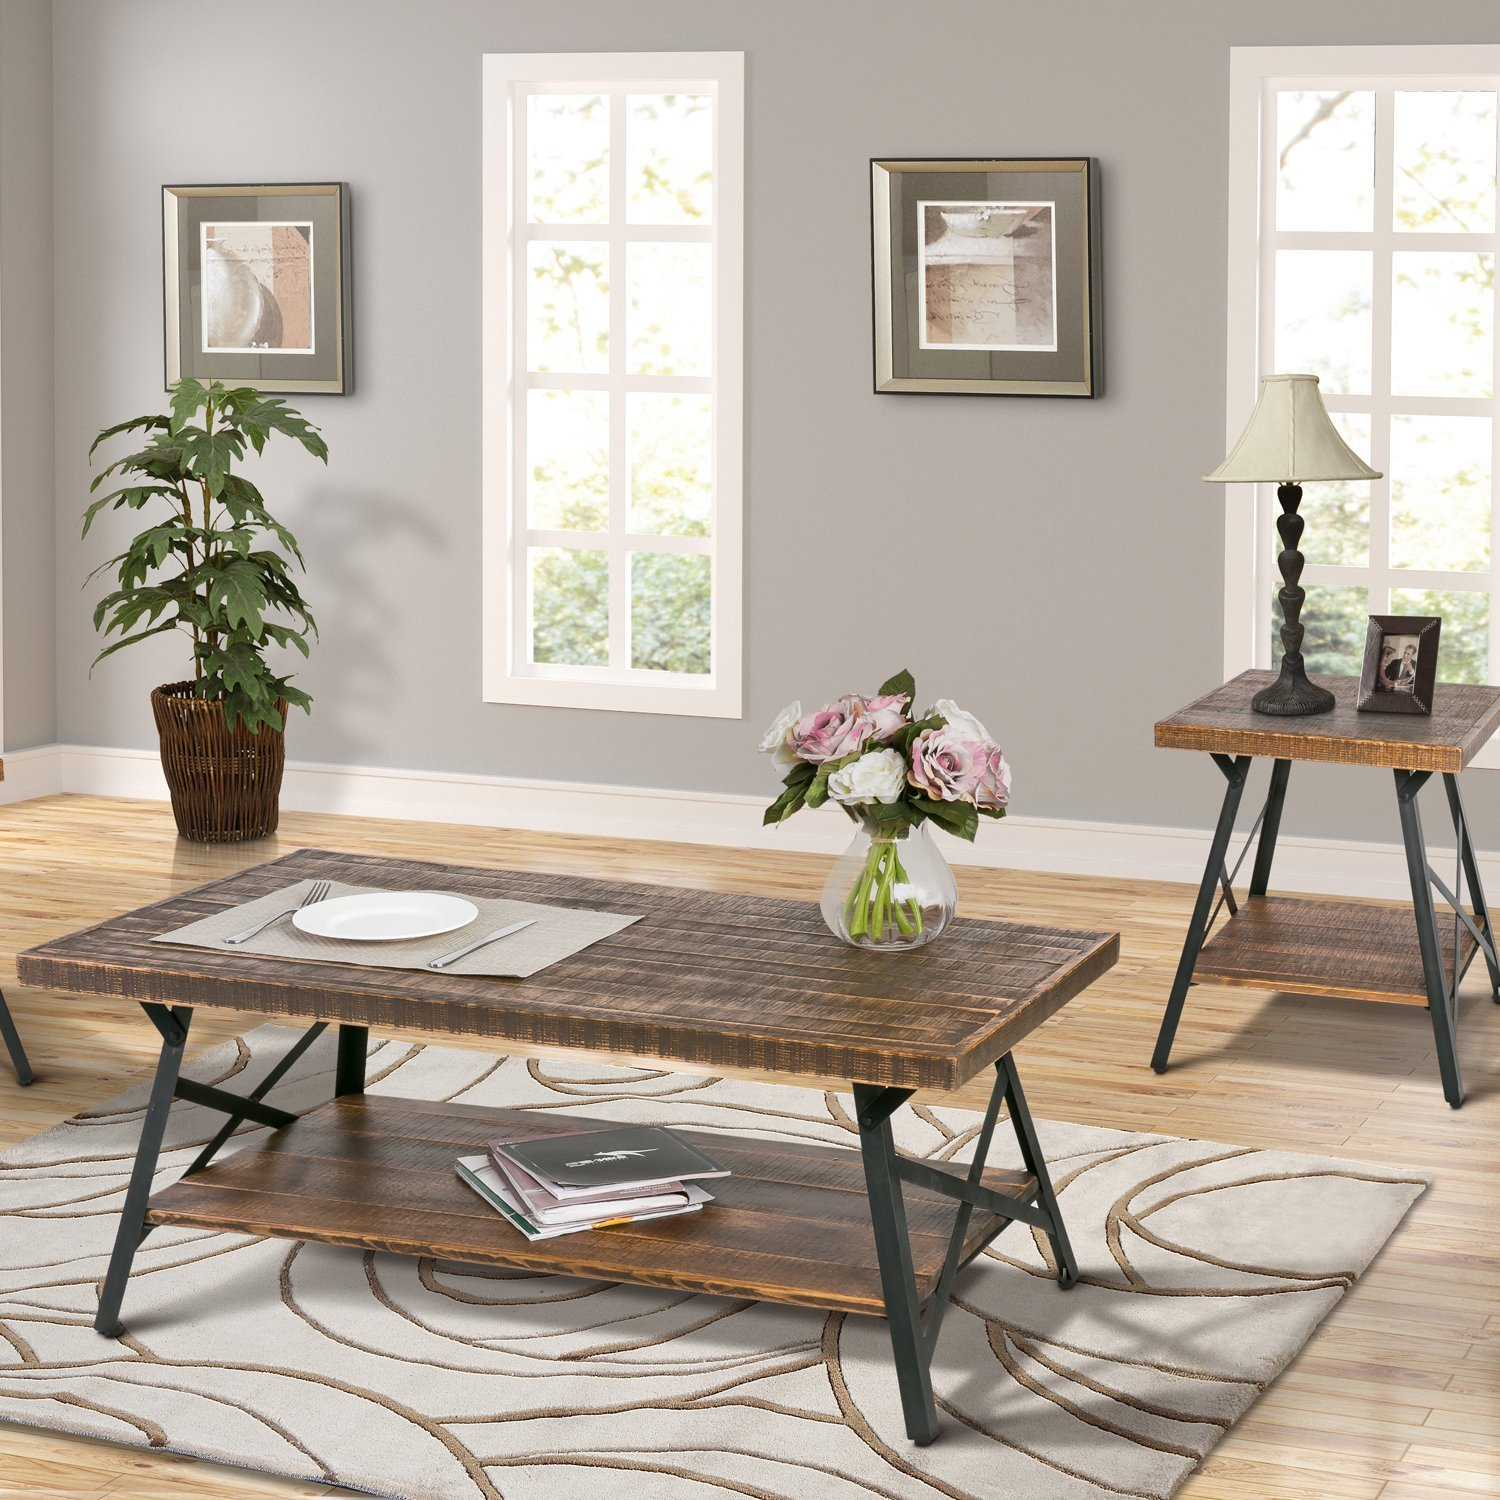 Rustic Wood Coffee Table With Metal Legs End Table Living